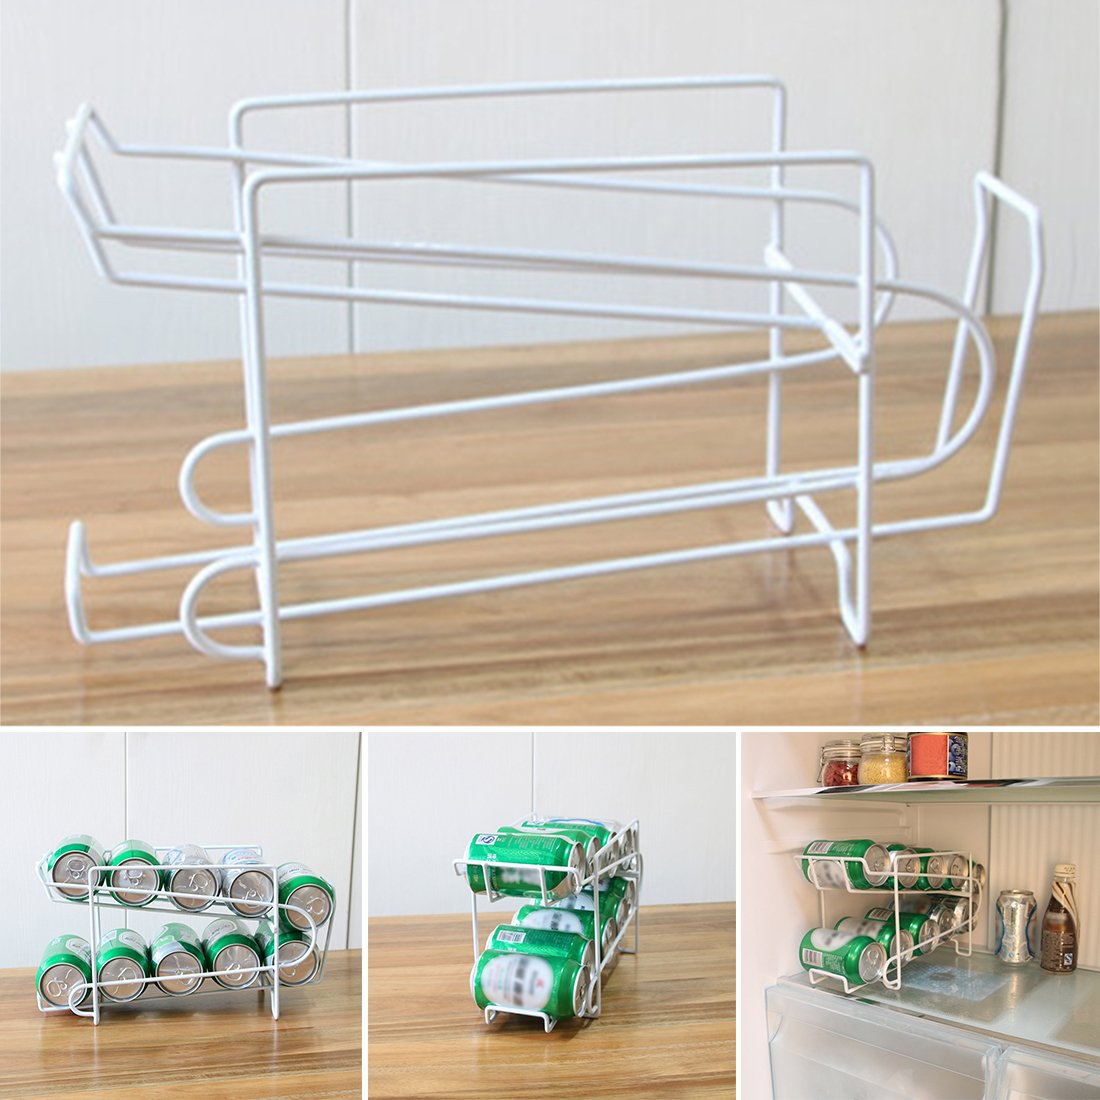 Amazon.com: Can Beer Beverage Soda Dispenser Holder Refrigerator Drink Storage Stand Can Rack (20.51318cm,white): Kitchen & Dining